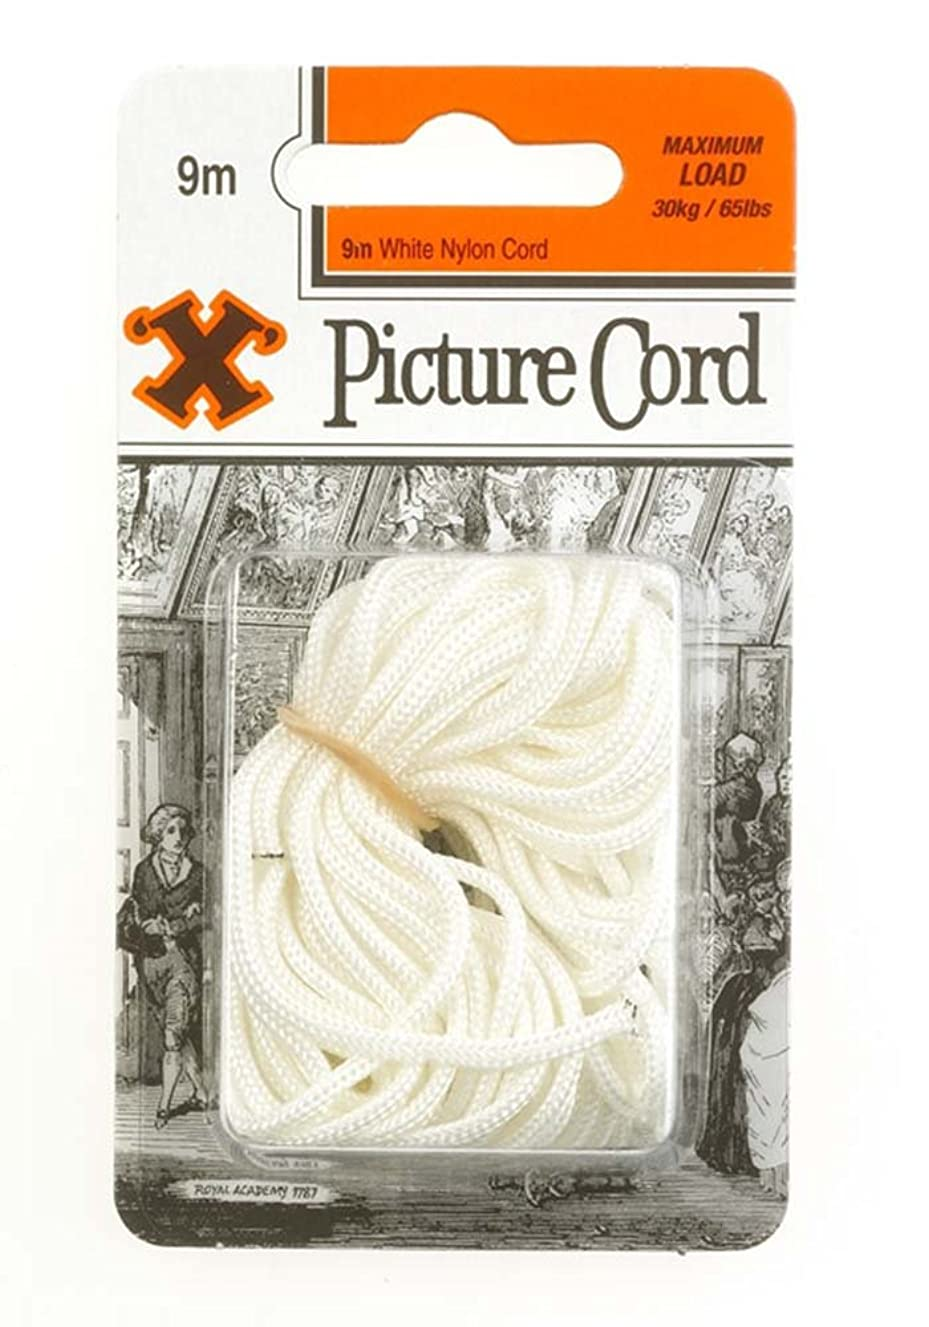 X 9m Picture Cord - White by 'X'